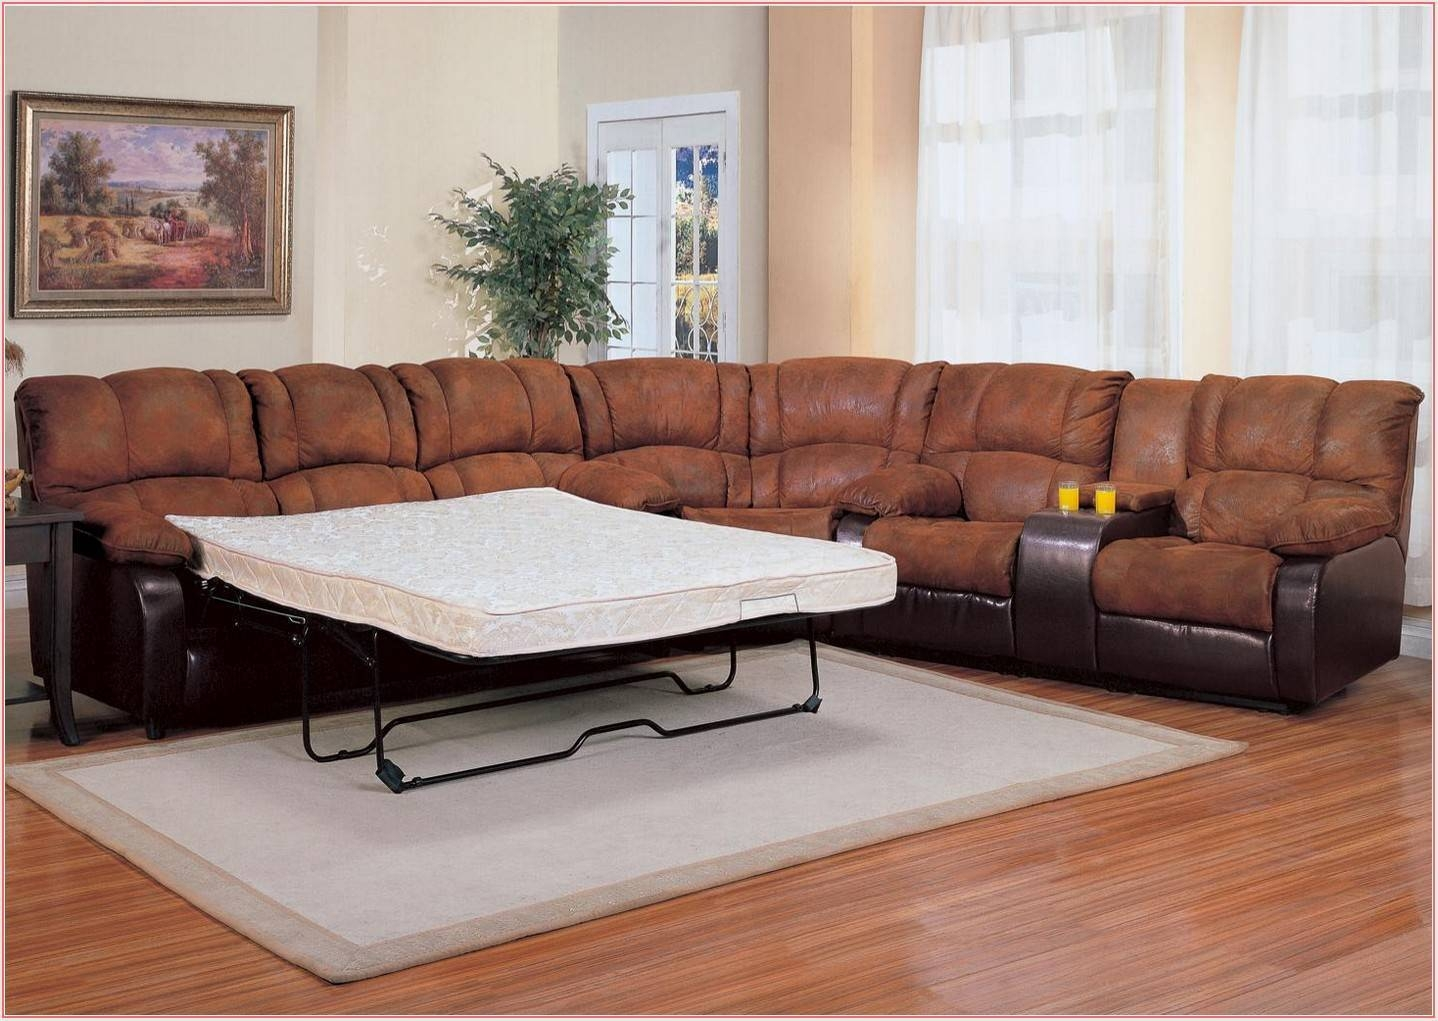 Astonishing C Shaped Sofa Sectional 43 For Your Black And Red intended for C Shaped Sofa (Image 2 of 30)